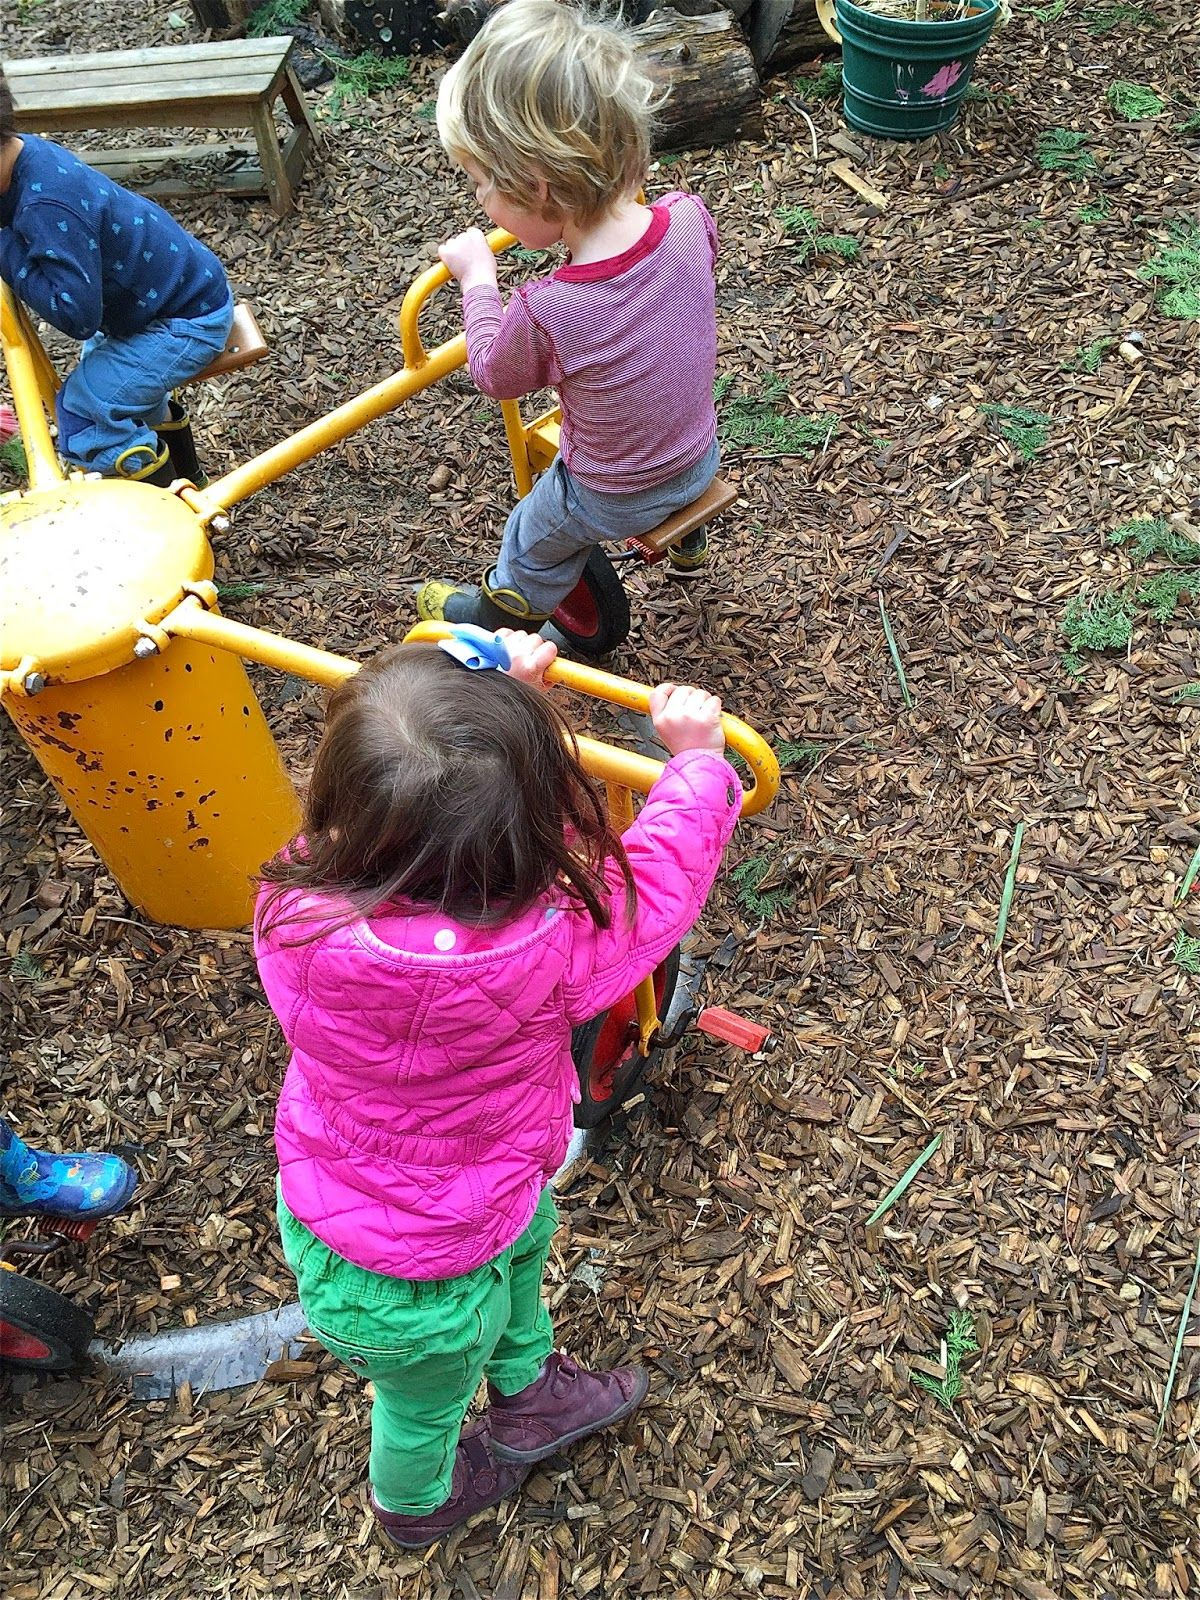 I Went To Kindergarten Back In The 1960's We Played Outdoors, Built